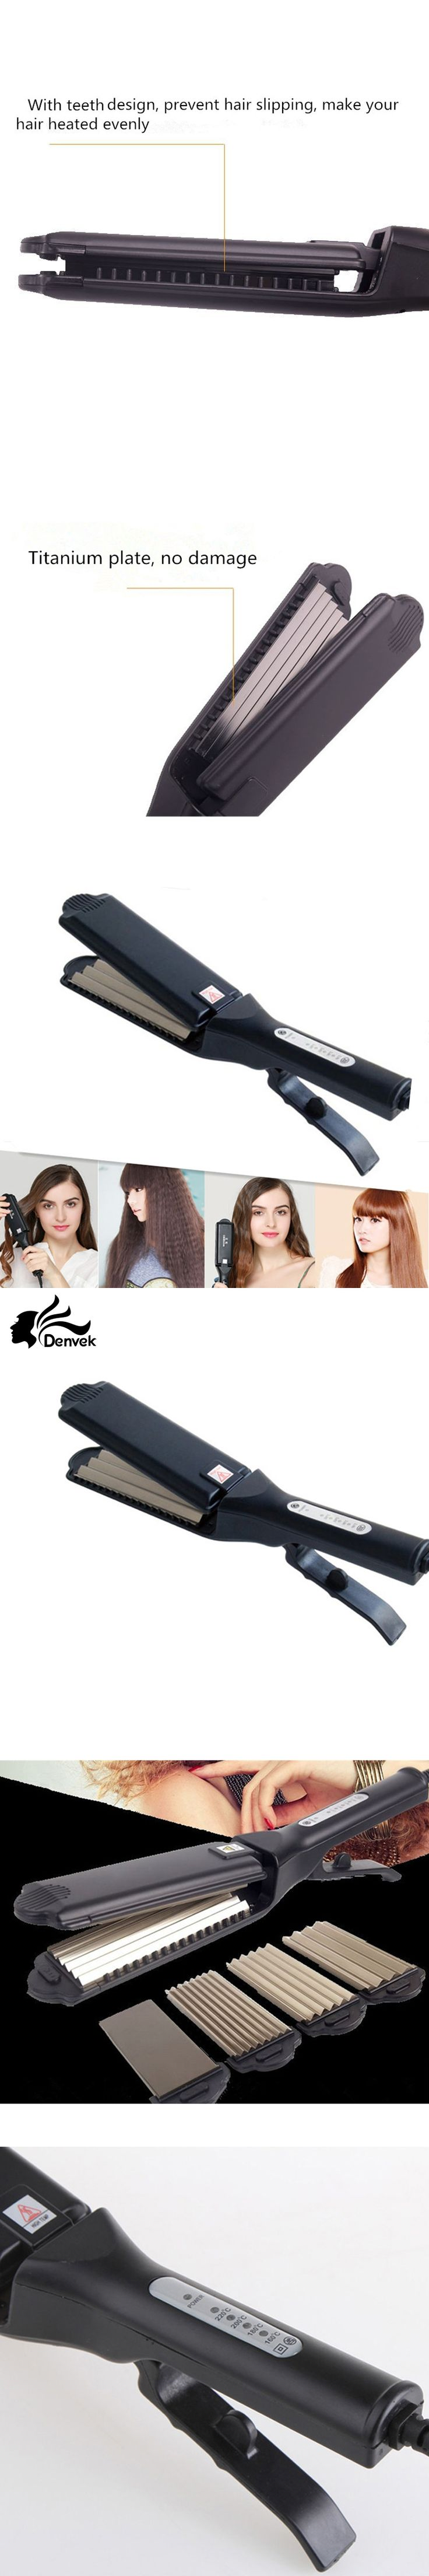 2 in 1 Corn Hair Straightening&curler iron  titanium ironFlat Iron Intelligent Hair Curler Straightener Styling Beauty Hair Tool